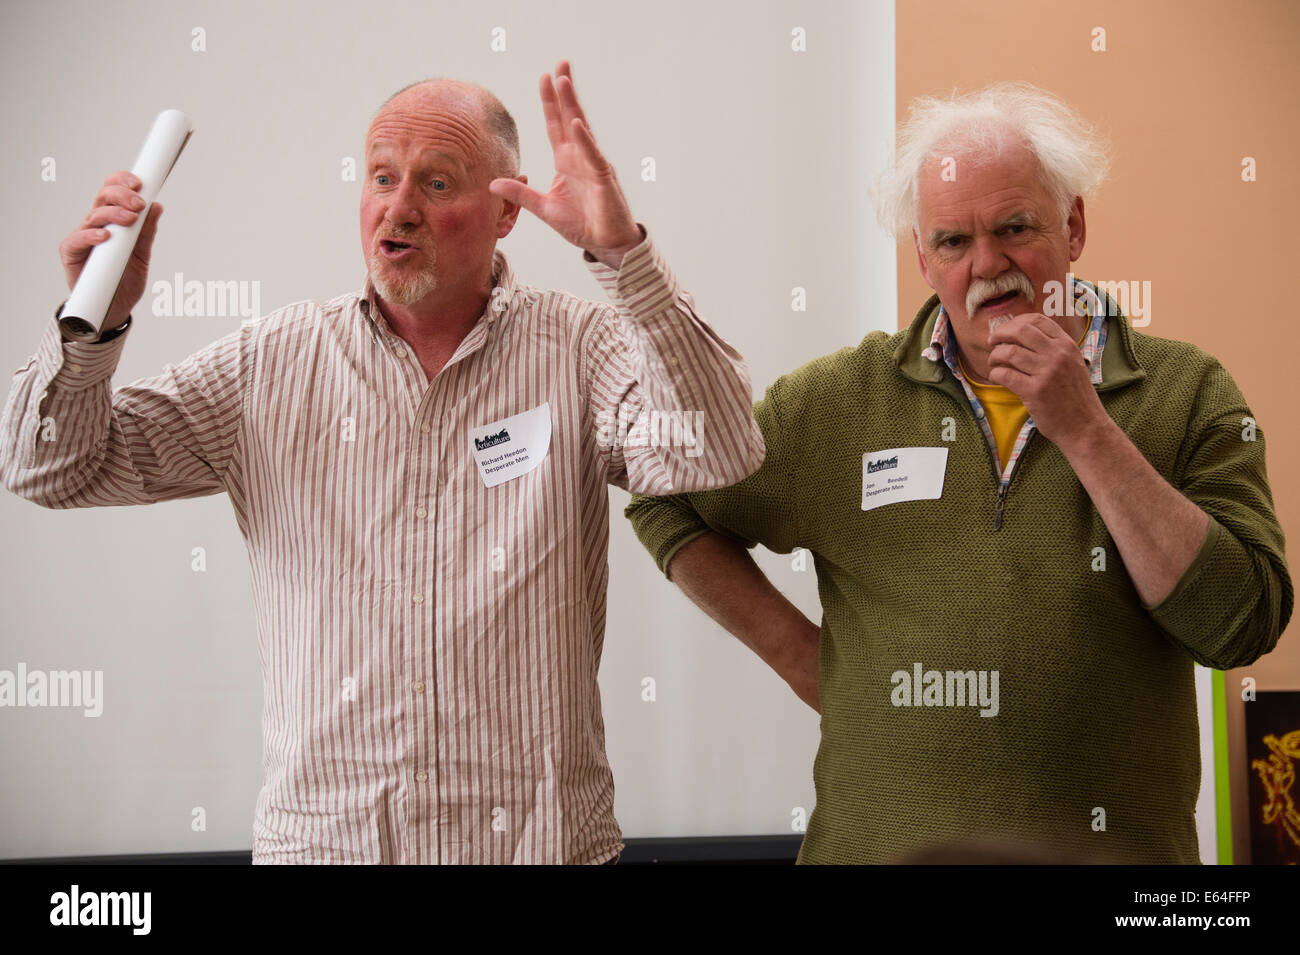 Street theatre practitioners and performance artists The Desperate Men (Richard Heedon and John Beedell) - UK - Stock Image